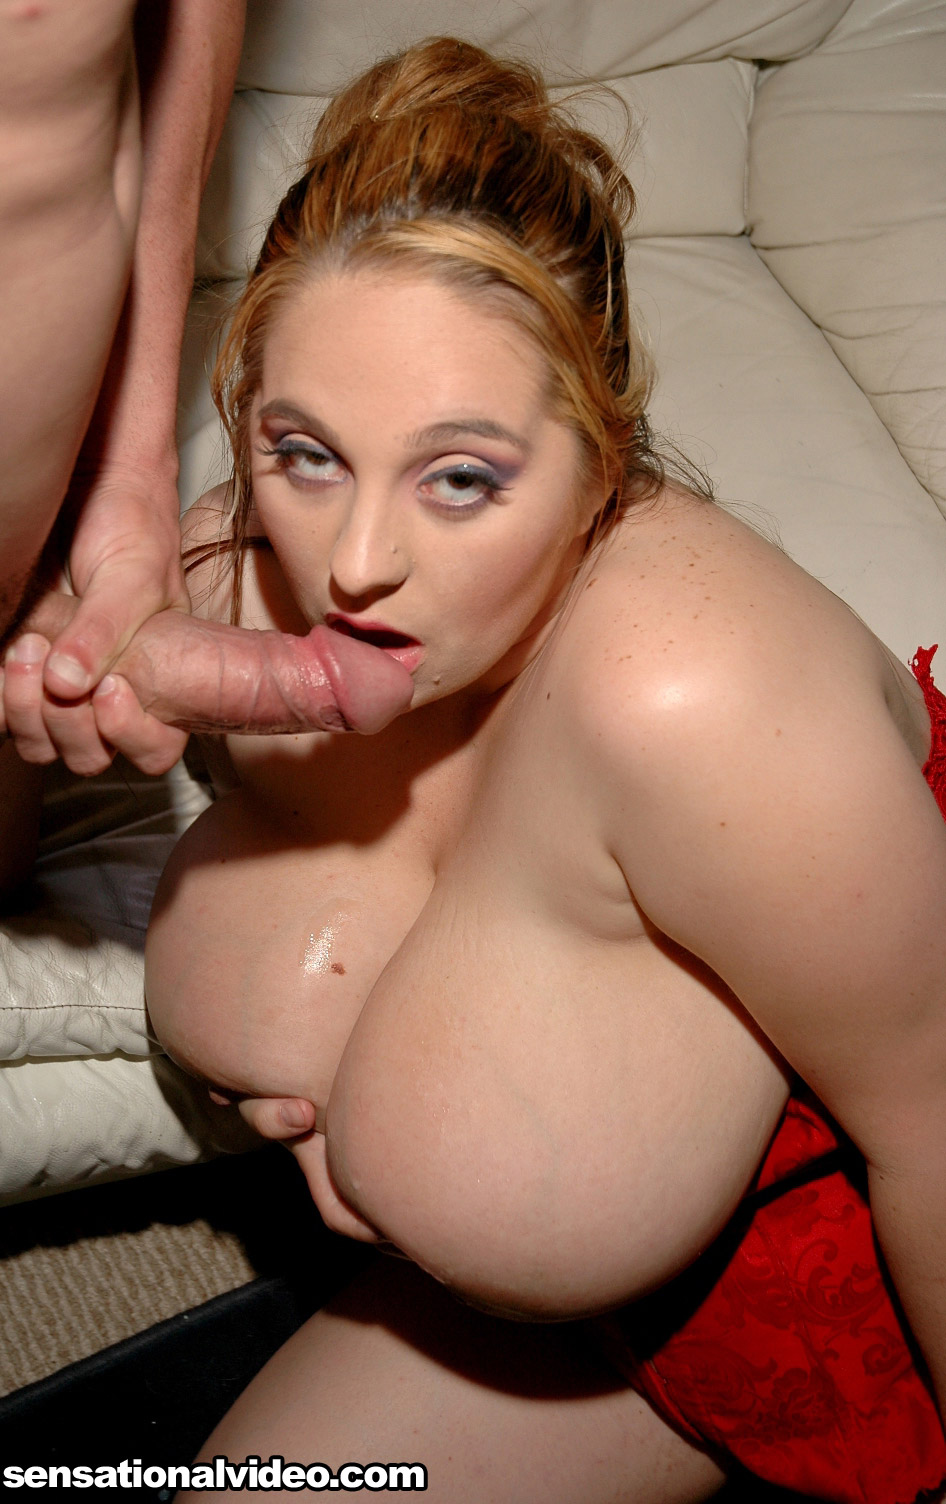 big boobed moms blowjobs jpg 1200x900